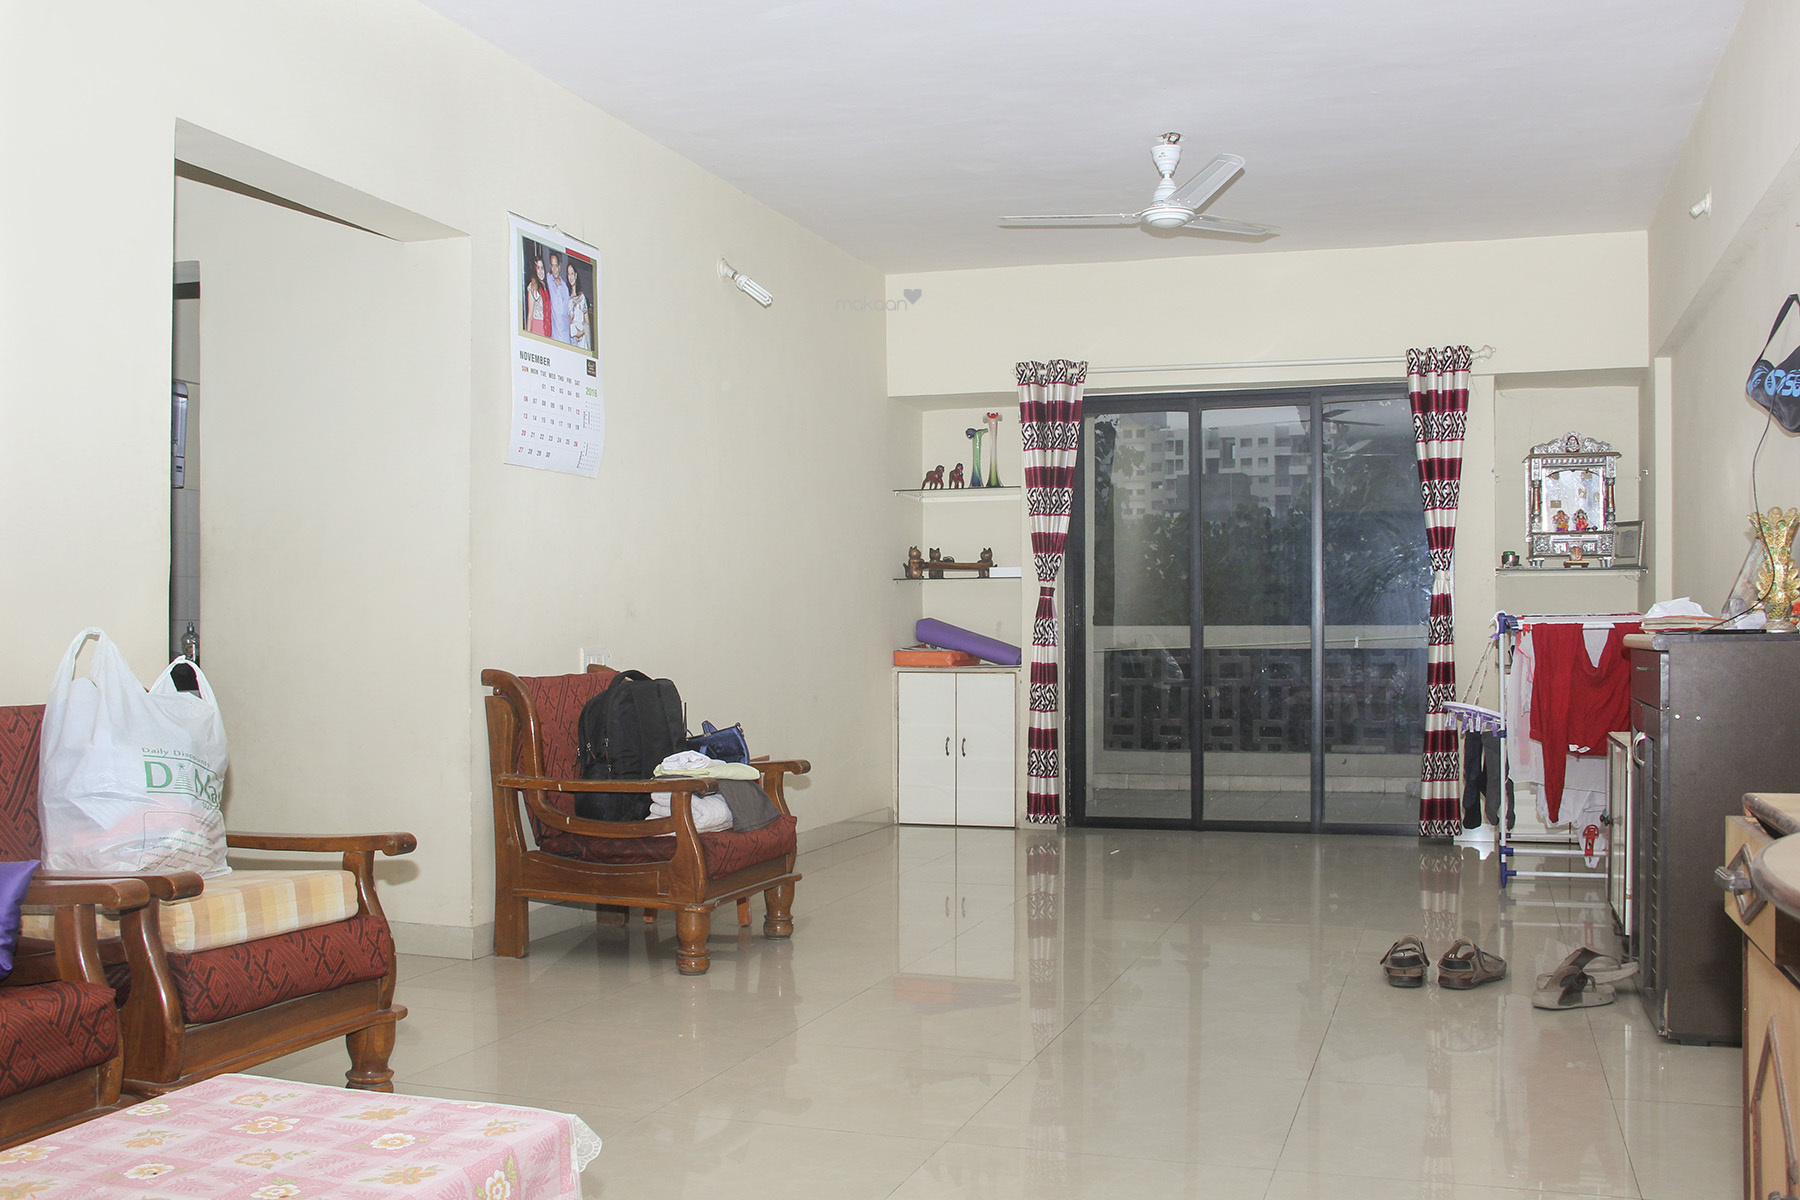 1645 sq ft 3BHK 3BHK+3T (1,645 sq ft) Property By Proptiger In Bella Vista Empress, Wakad